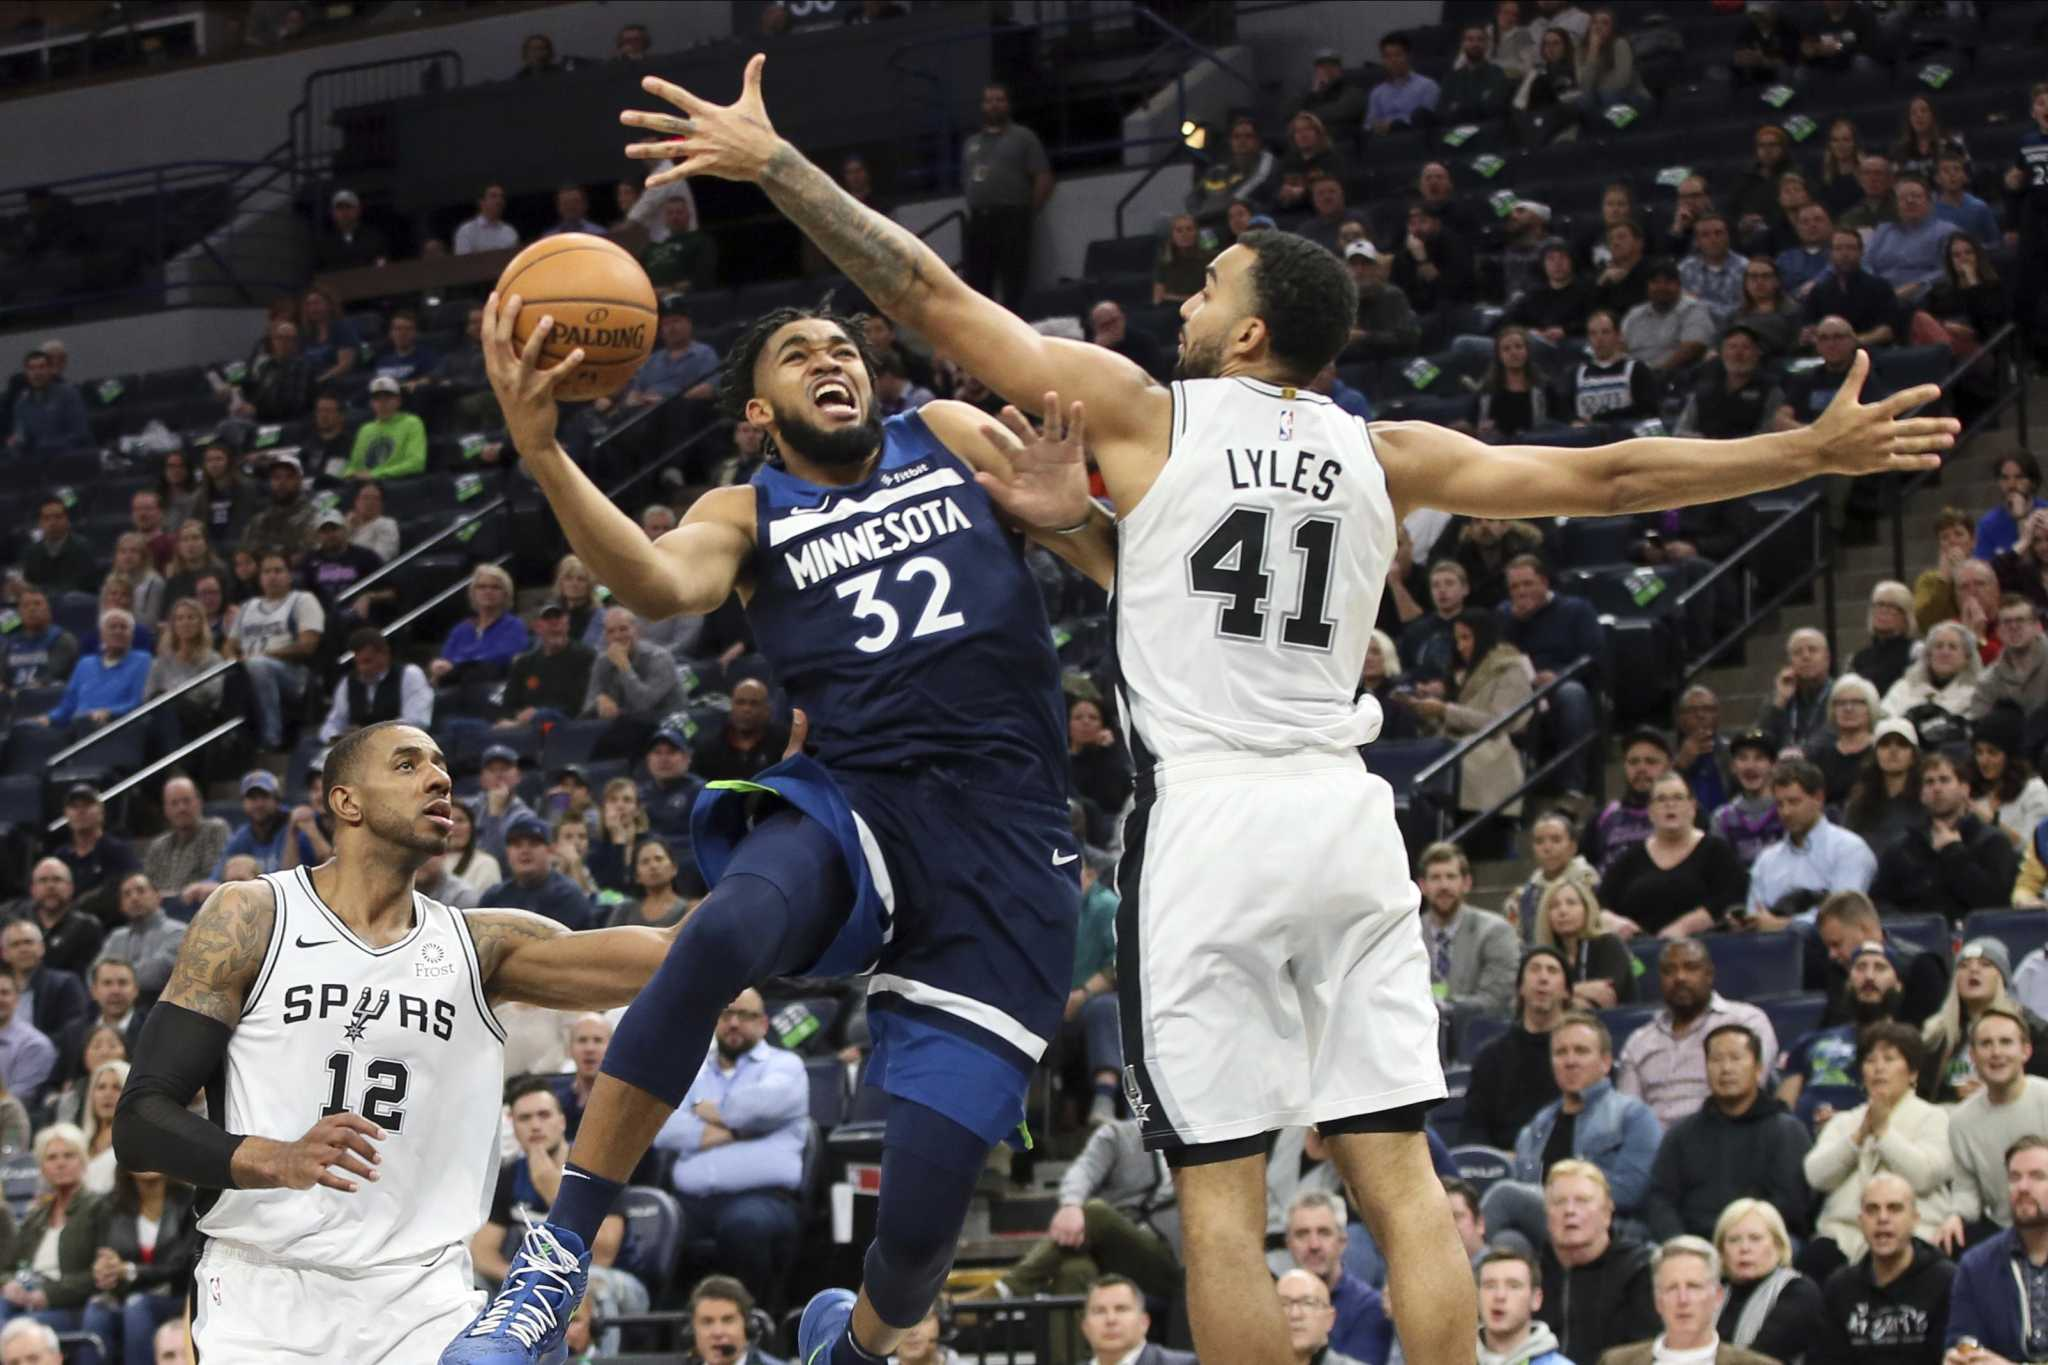 San Antonio Spurs' defense shredded again in loss to Minnesota Wolves